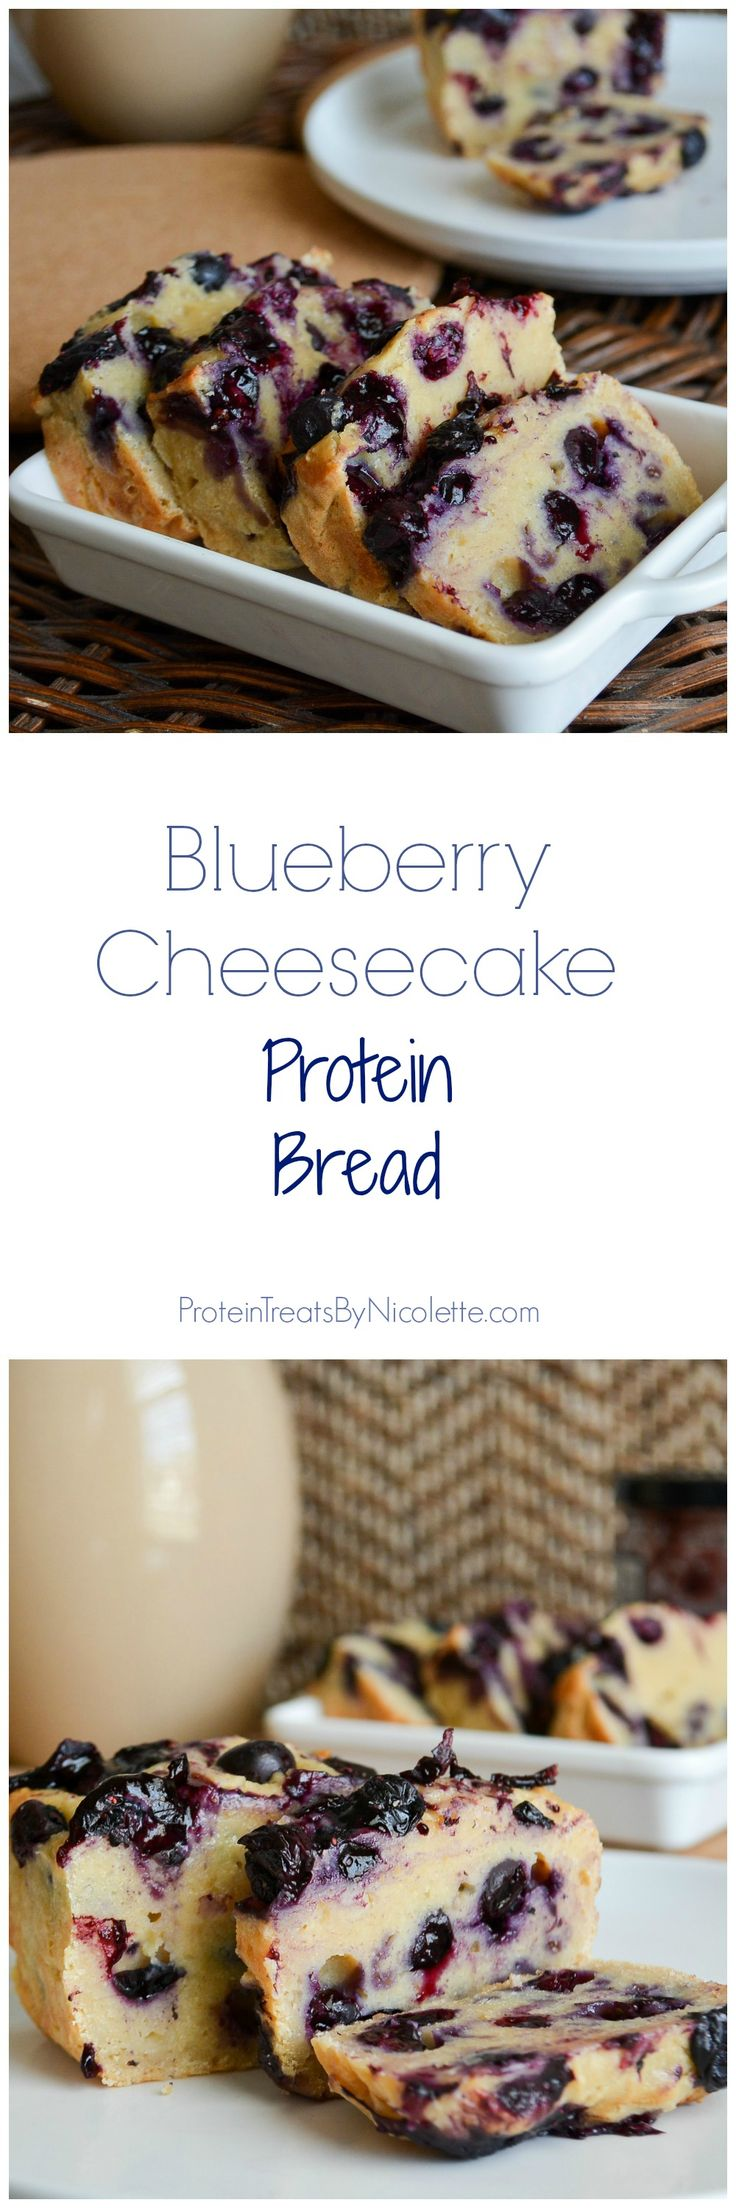 Blueberry Cheesecake Protein Bread #cleaneating #healthy #protein (Clean Eating Low Carb Breakfast)